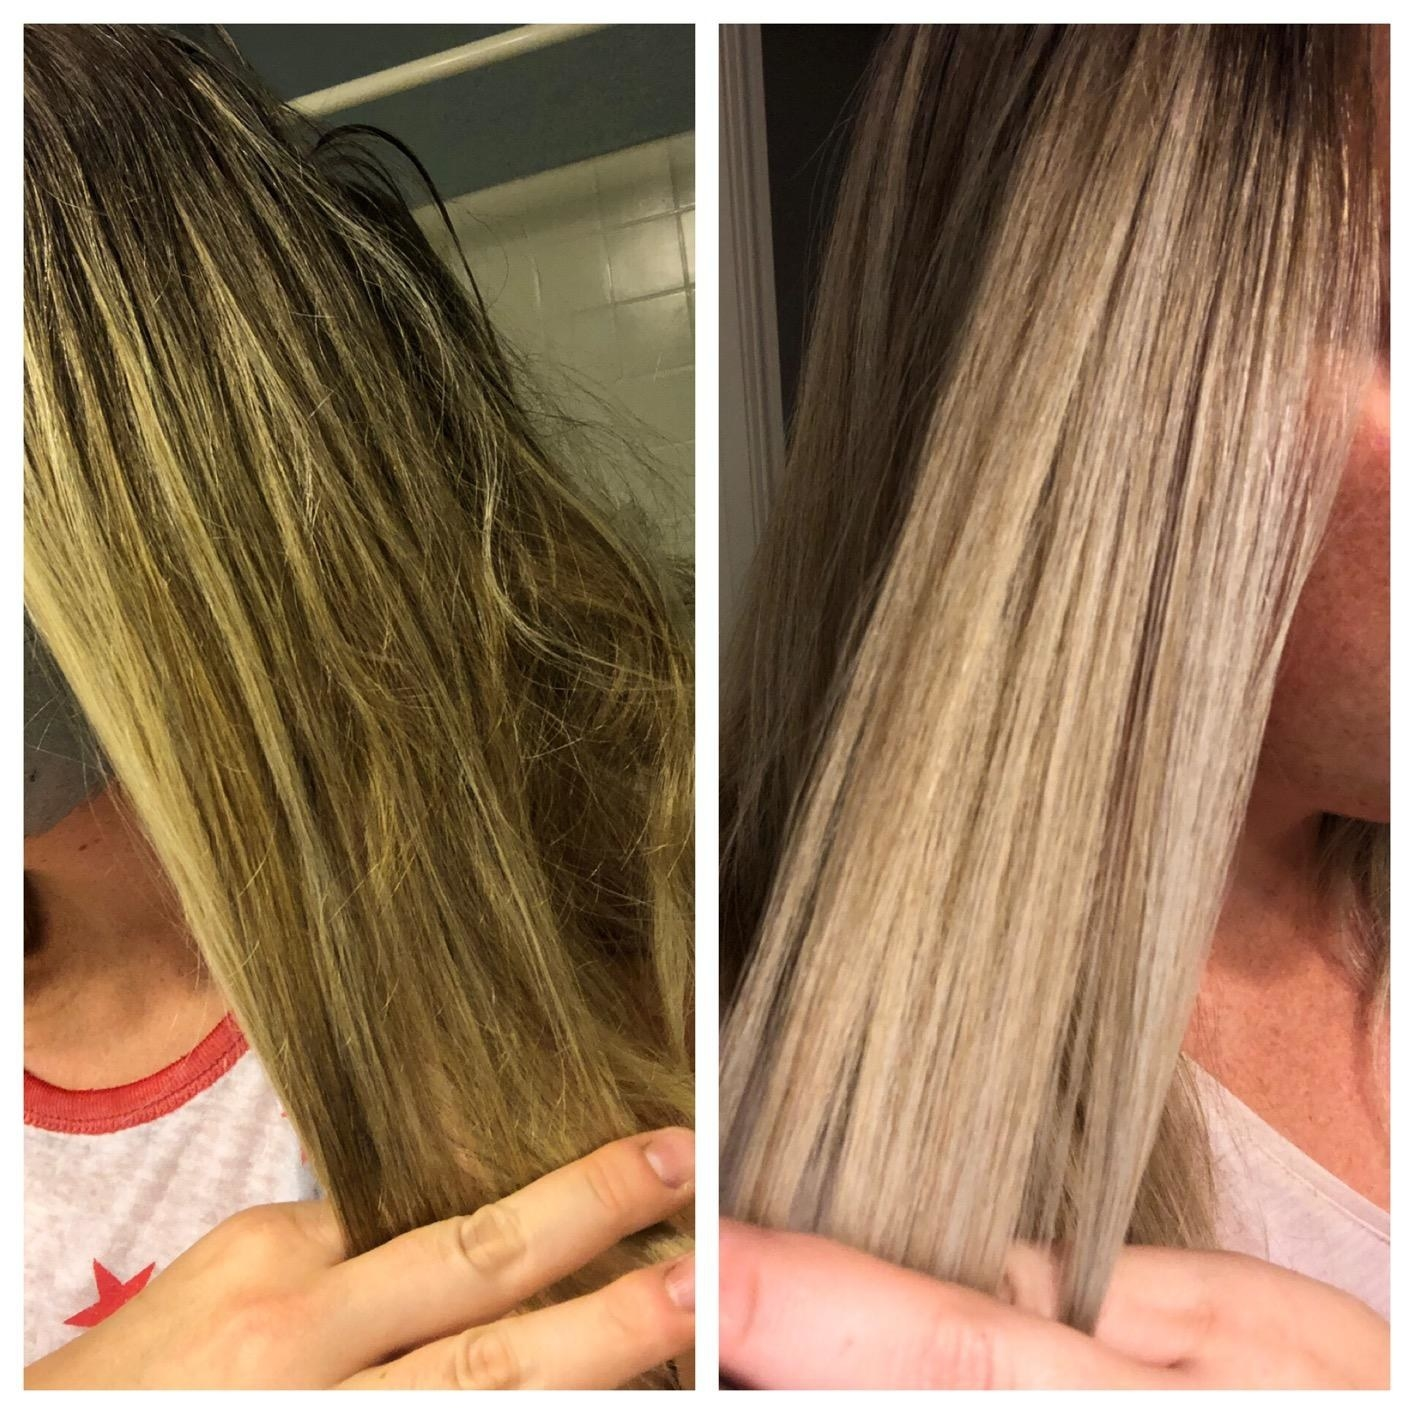 Reviewer photo showing before-and-after results using Fanola No Yellow Shampoo